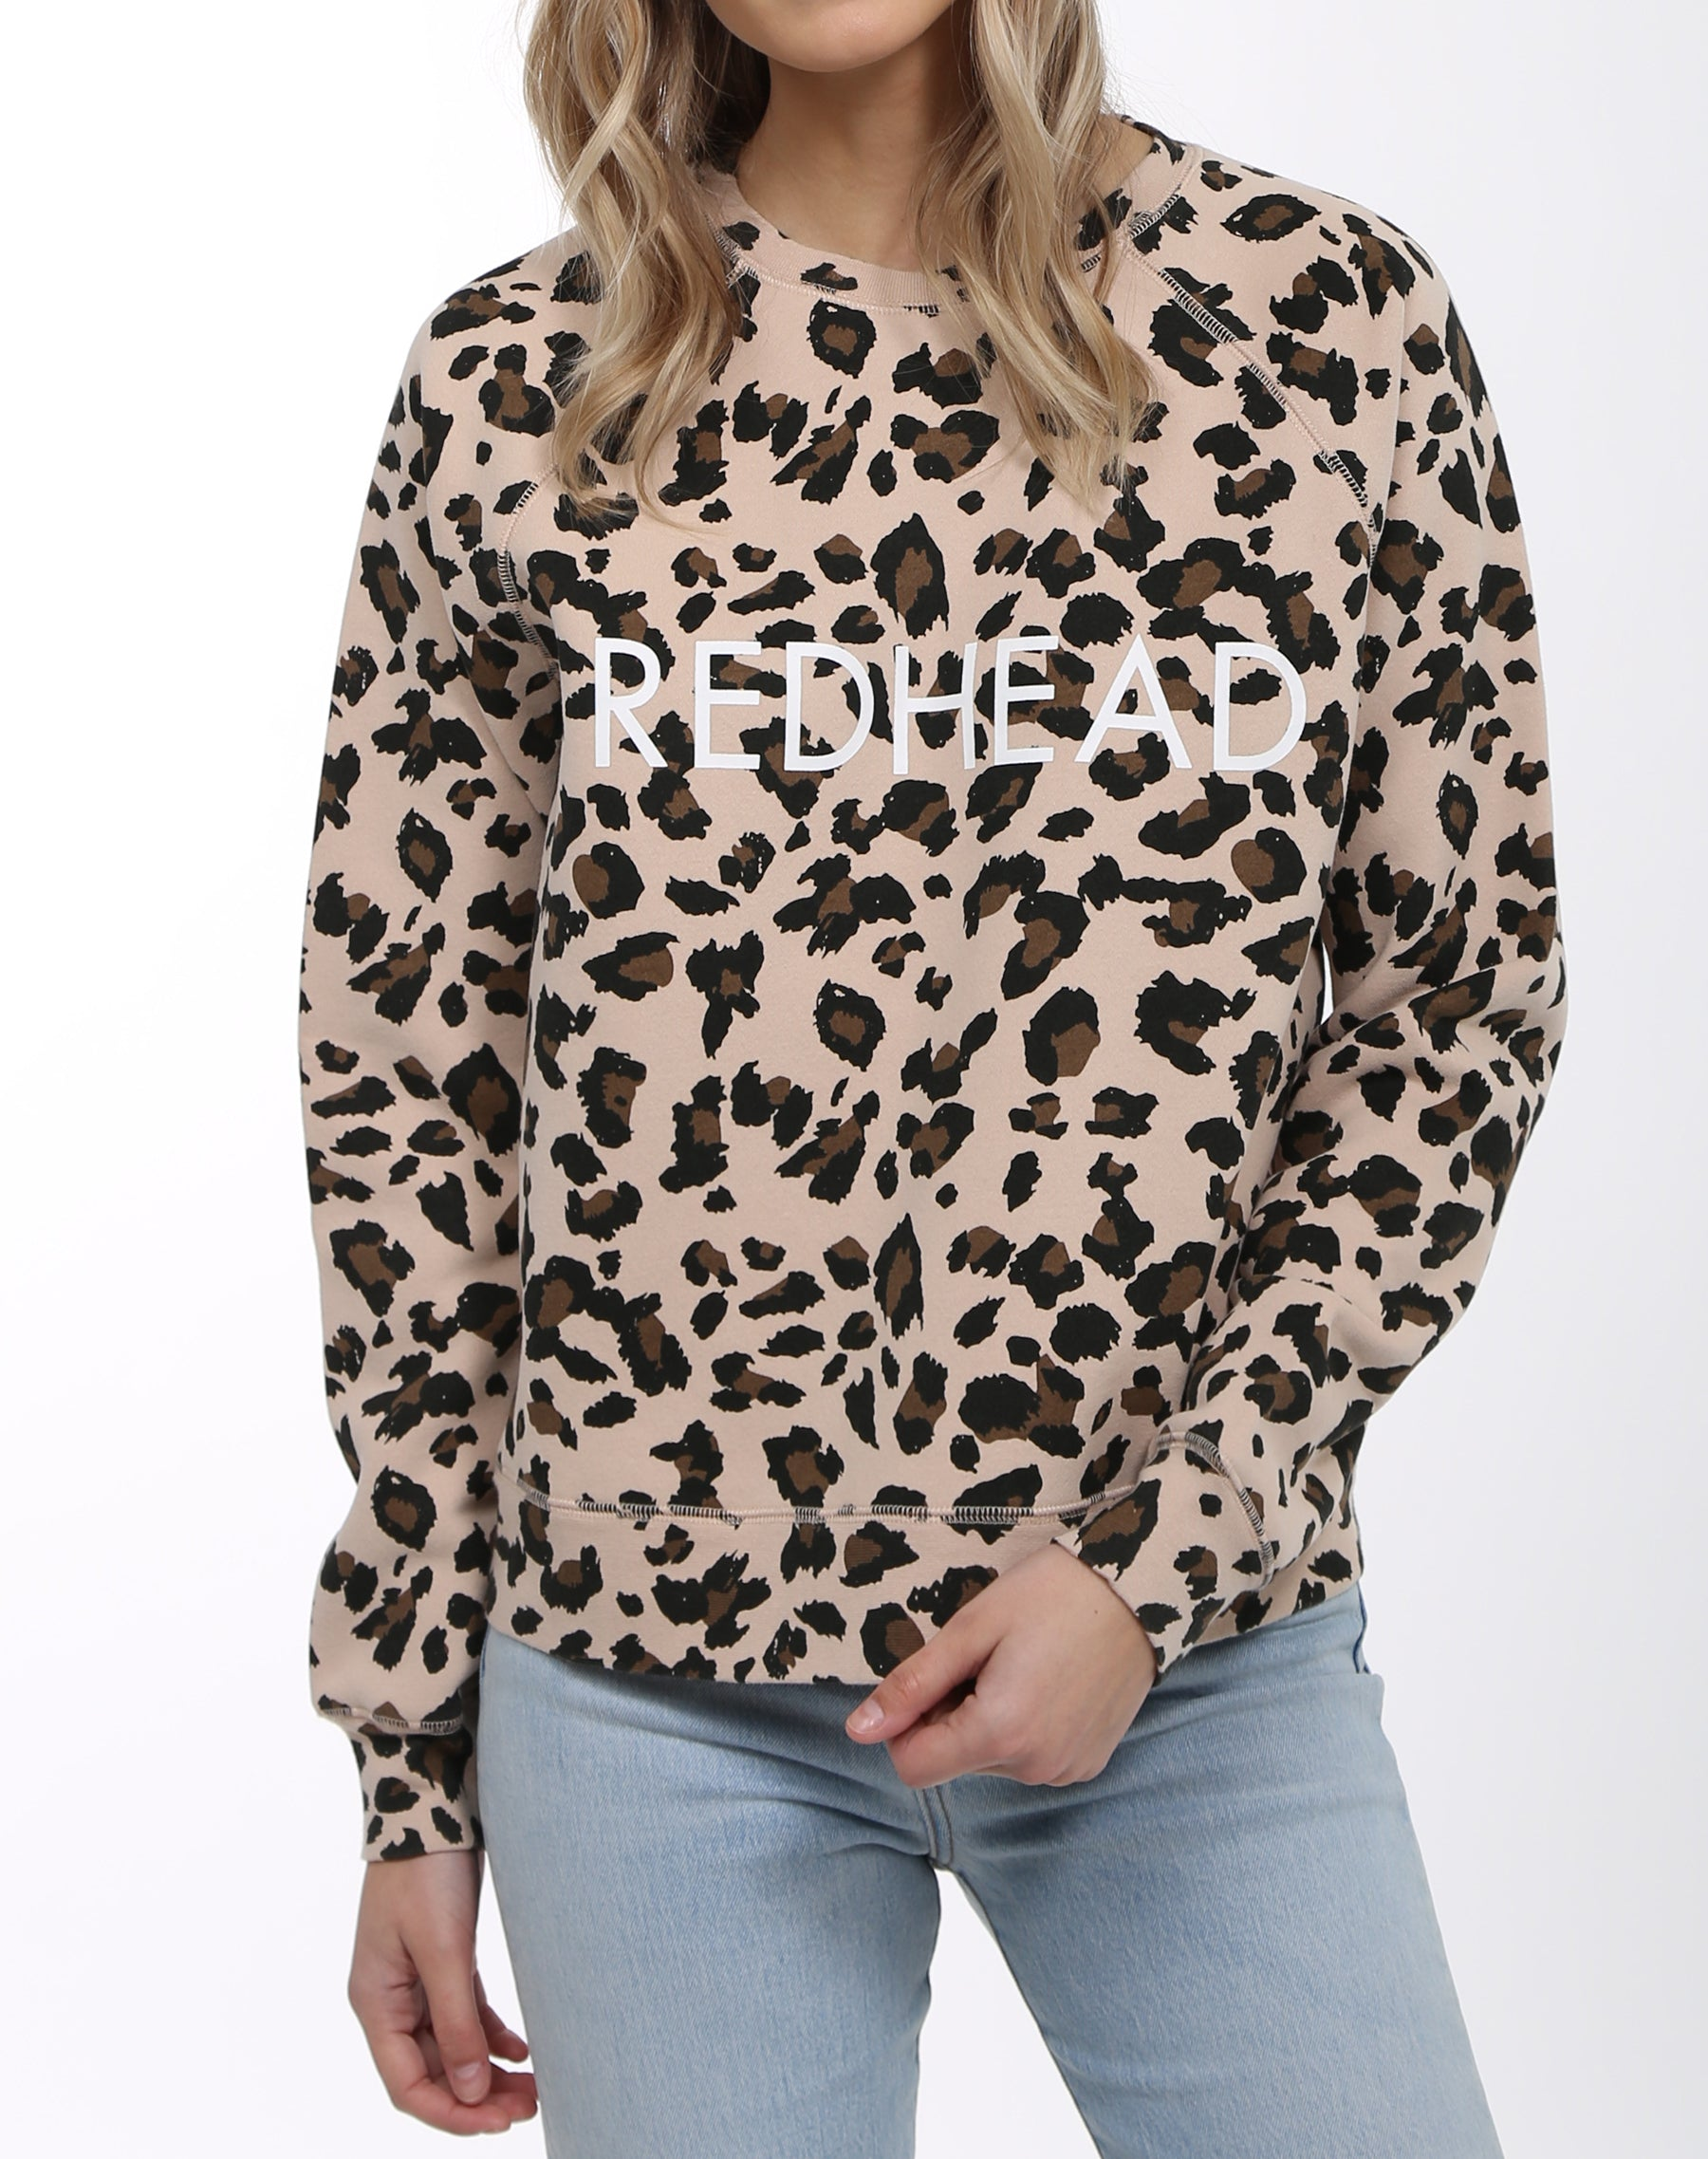 Photo of the Redhead middle sister crew neck sweatshirt in leopard print by Brunette the Label.